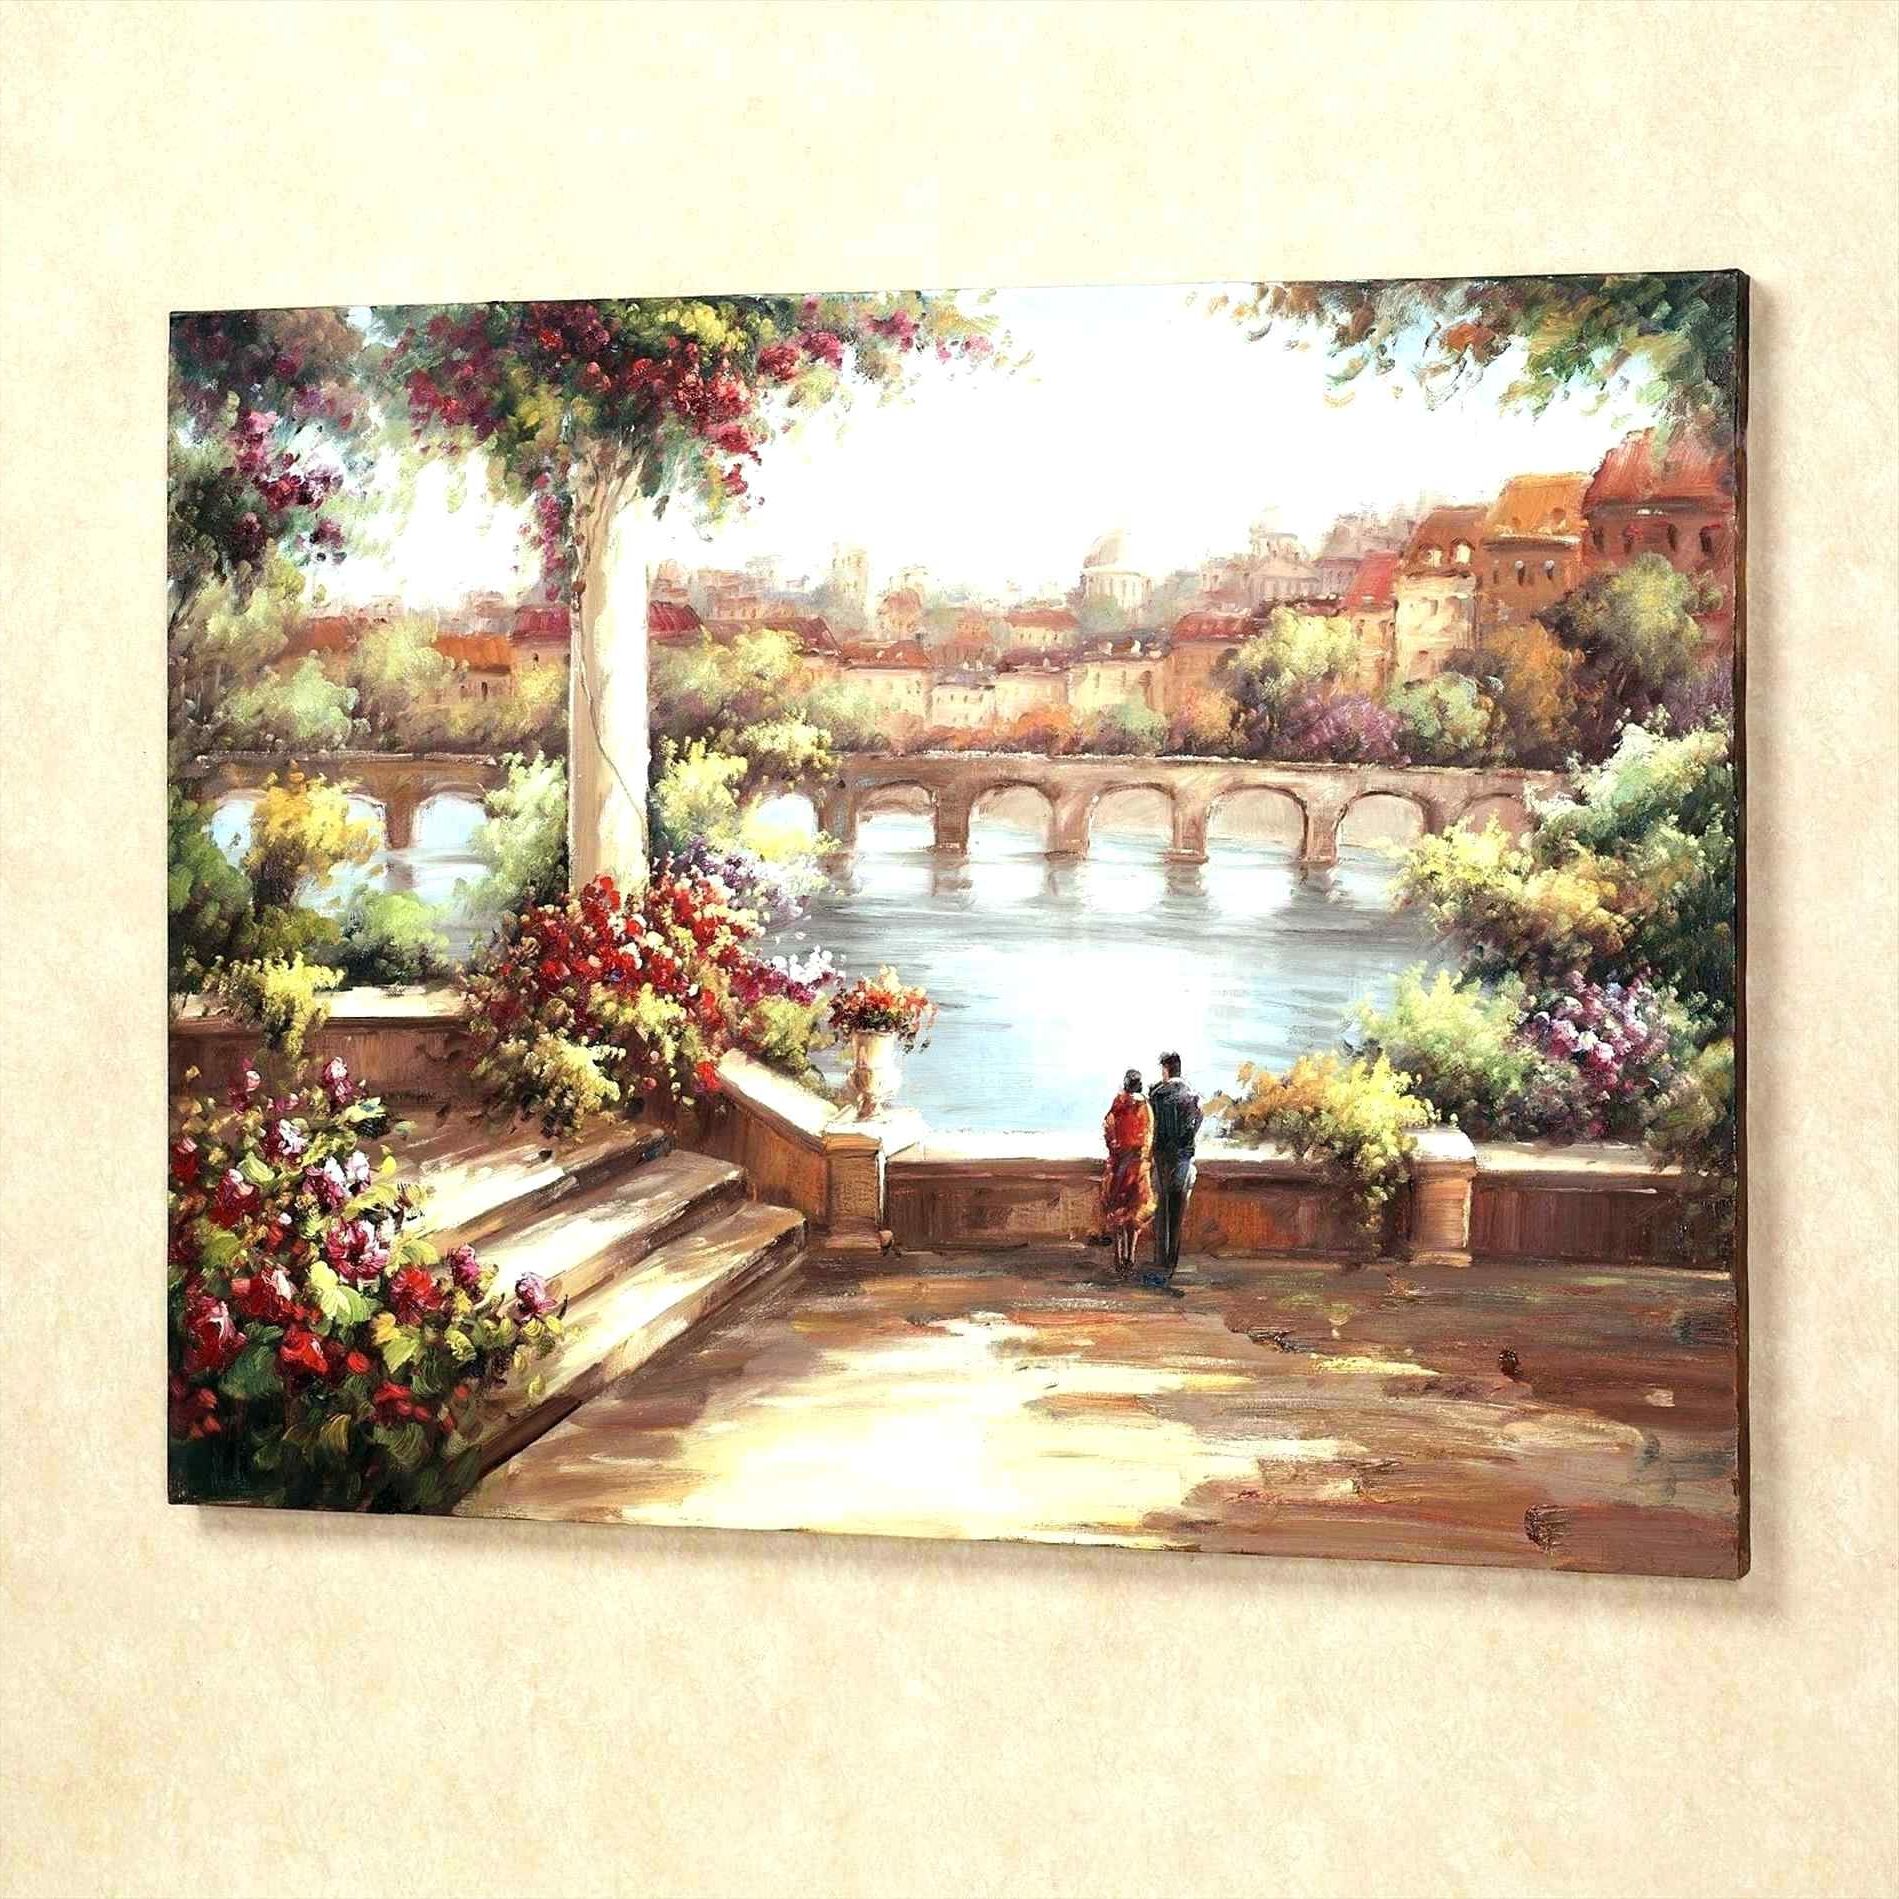 Framed Italian Wall Art Inside Favorite Wall Arts ~ Italian Wall Art For Bedroom Pizarro I Framed Wall Art (View 12 of 15)